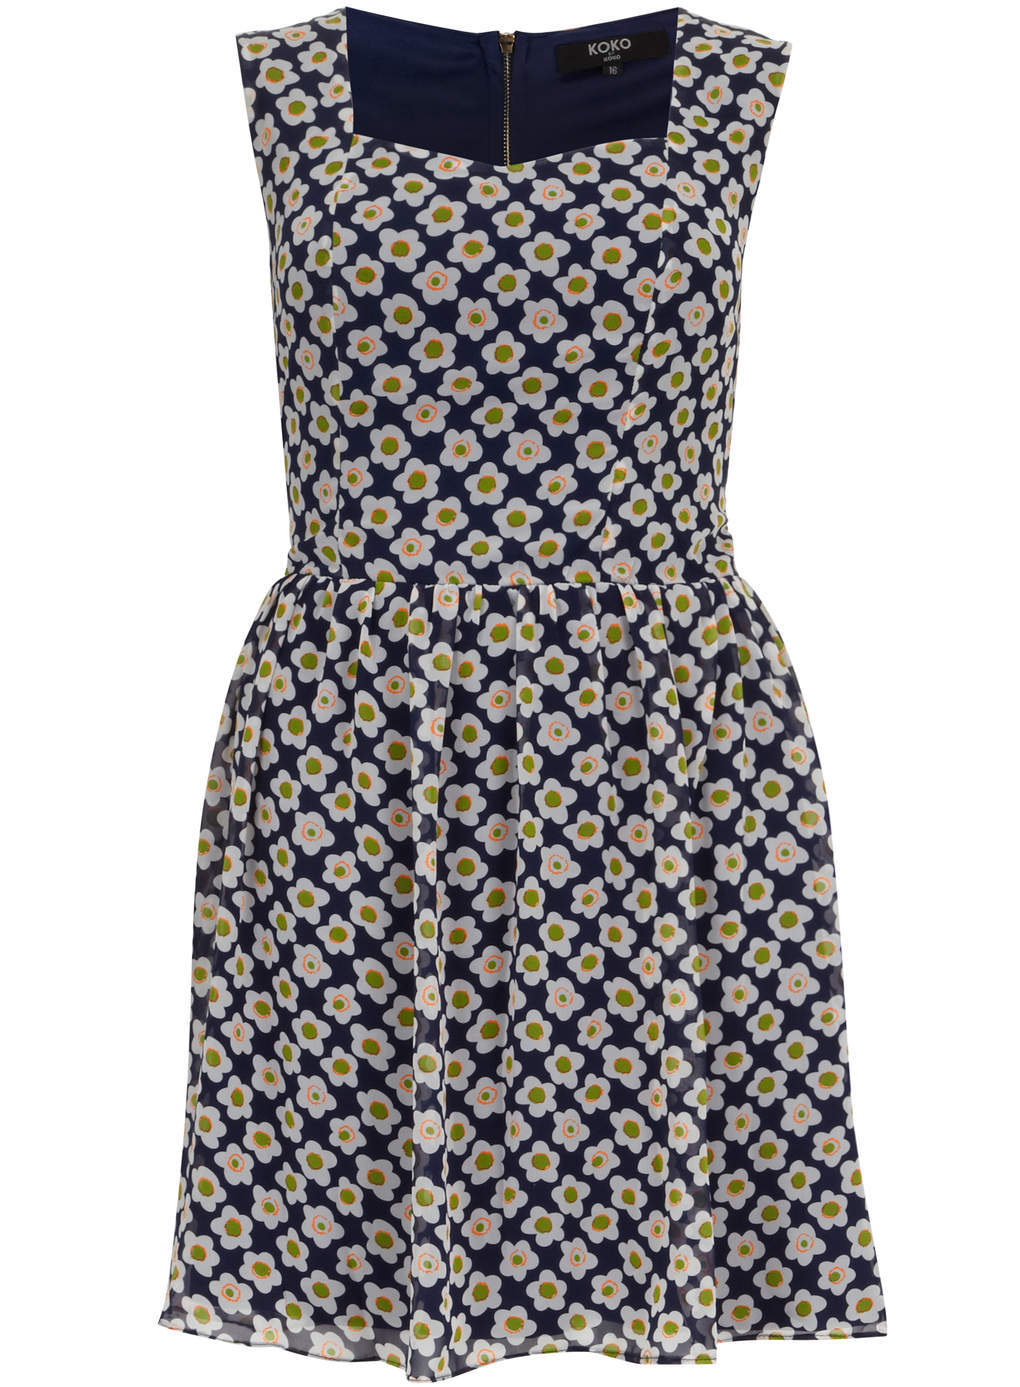 Koko Koko Blue Daisy Print Skater Dress - length: mid thigh; sleeve style: sleeveless; predominant colour: navy; secondary colour: khaki; occasions: casual, creative work; fit: fitted at waist & bust; style: fit & flare; fibres: polyester/polyamide - 100%; hip detail: soft pleats at hip/draping at hip/flared at hip; sleeve length: sleeveless; texture group: sheer fabrics/chiffon/organza etc.; neckline: low square neck; pattern type: fabric; pattern size: standard; pattern: florals; season: s/s 2014